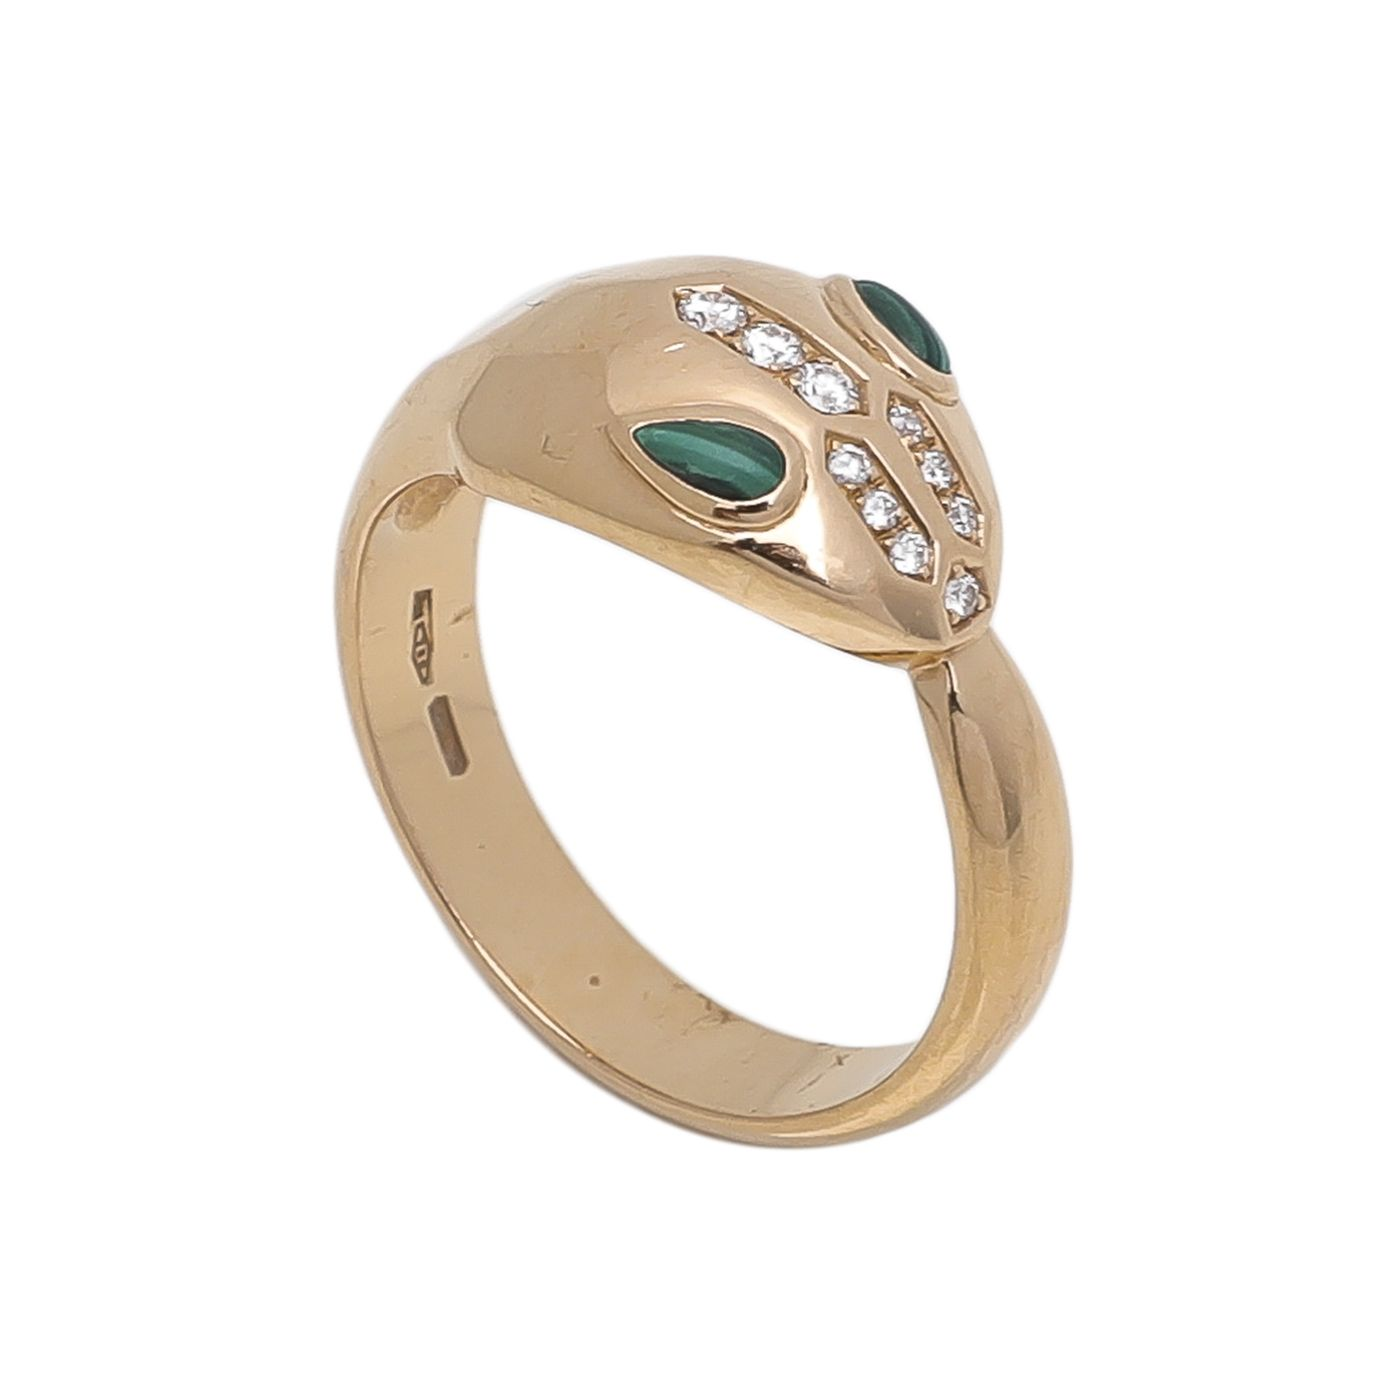 Bvlgari 18K Pink Gold Diamonds Malachite Serpenti Ring